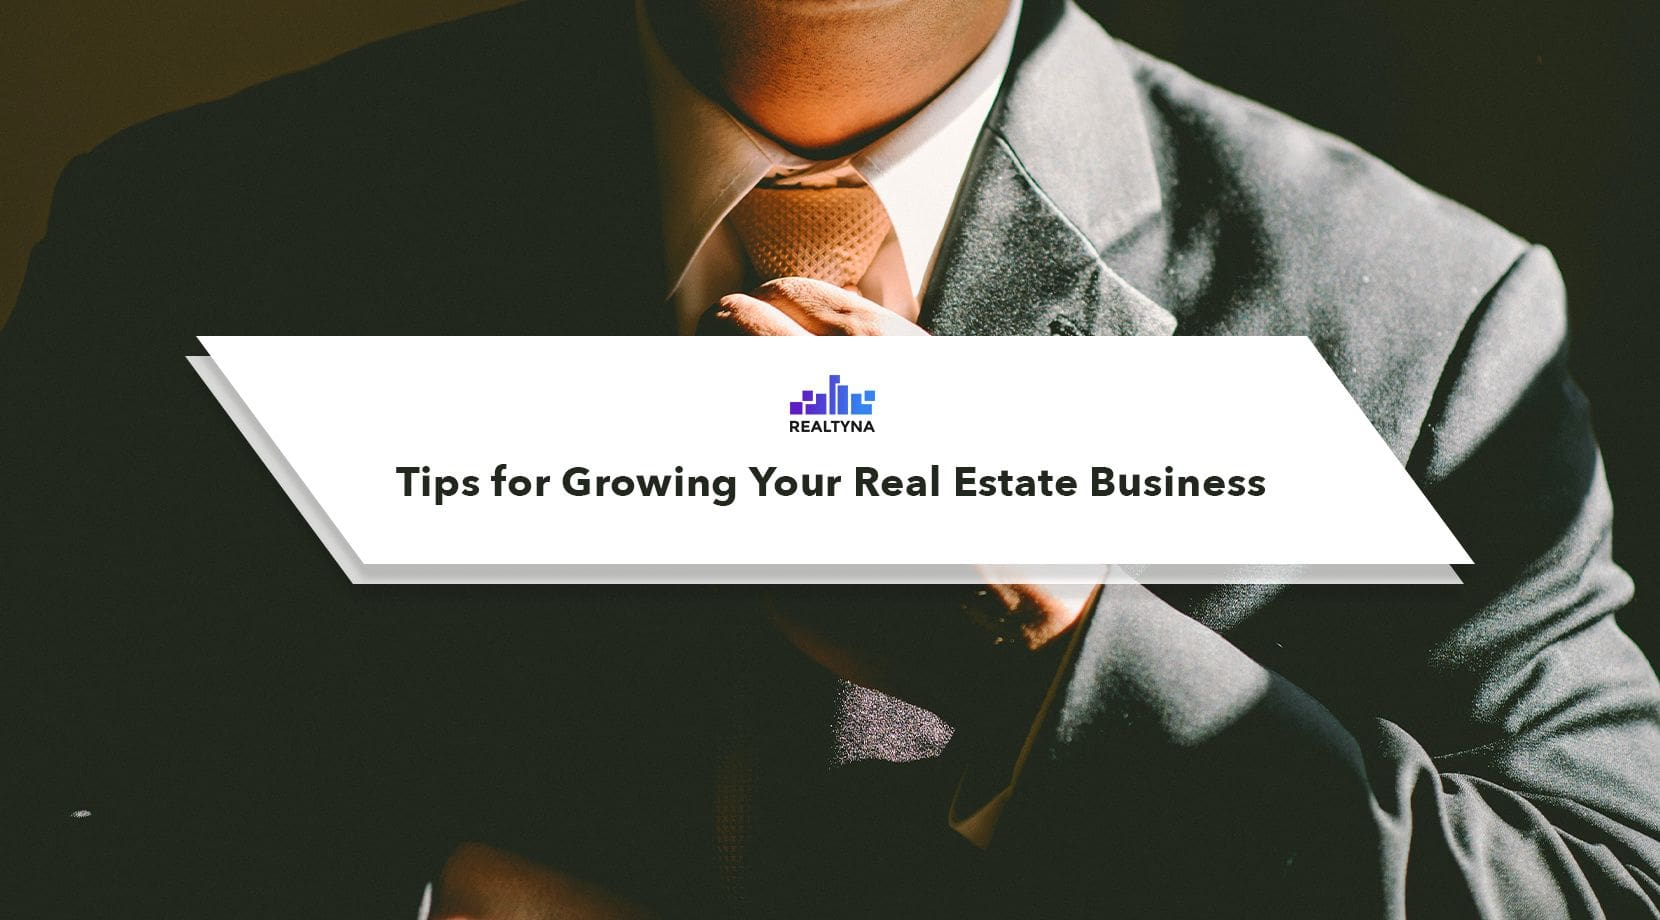 Tips for Growing Your Real Estate Business